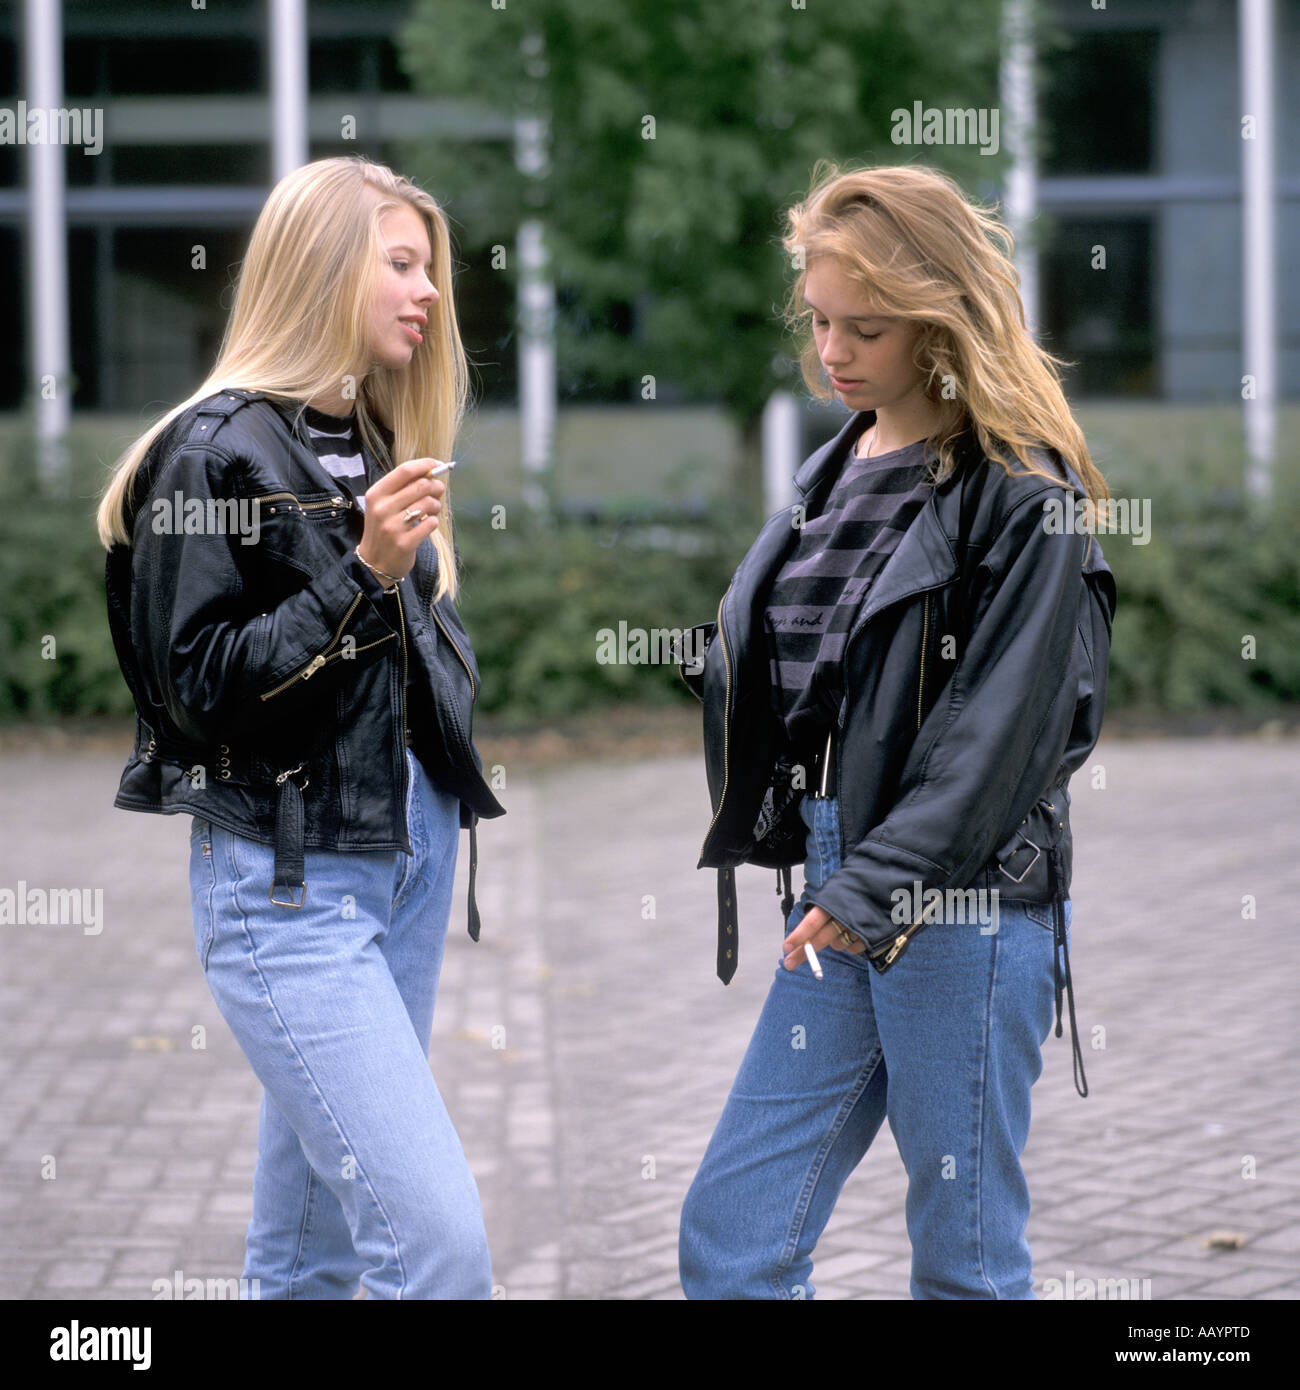 Two teenage girls standing outside smoking a cigarette stock photo